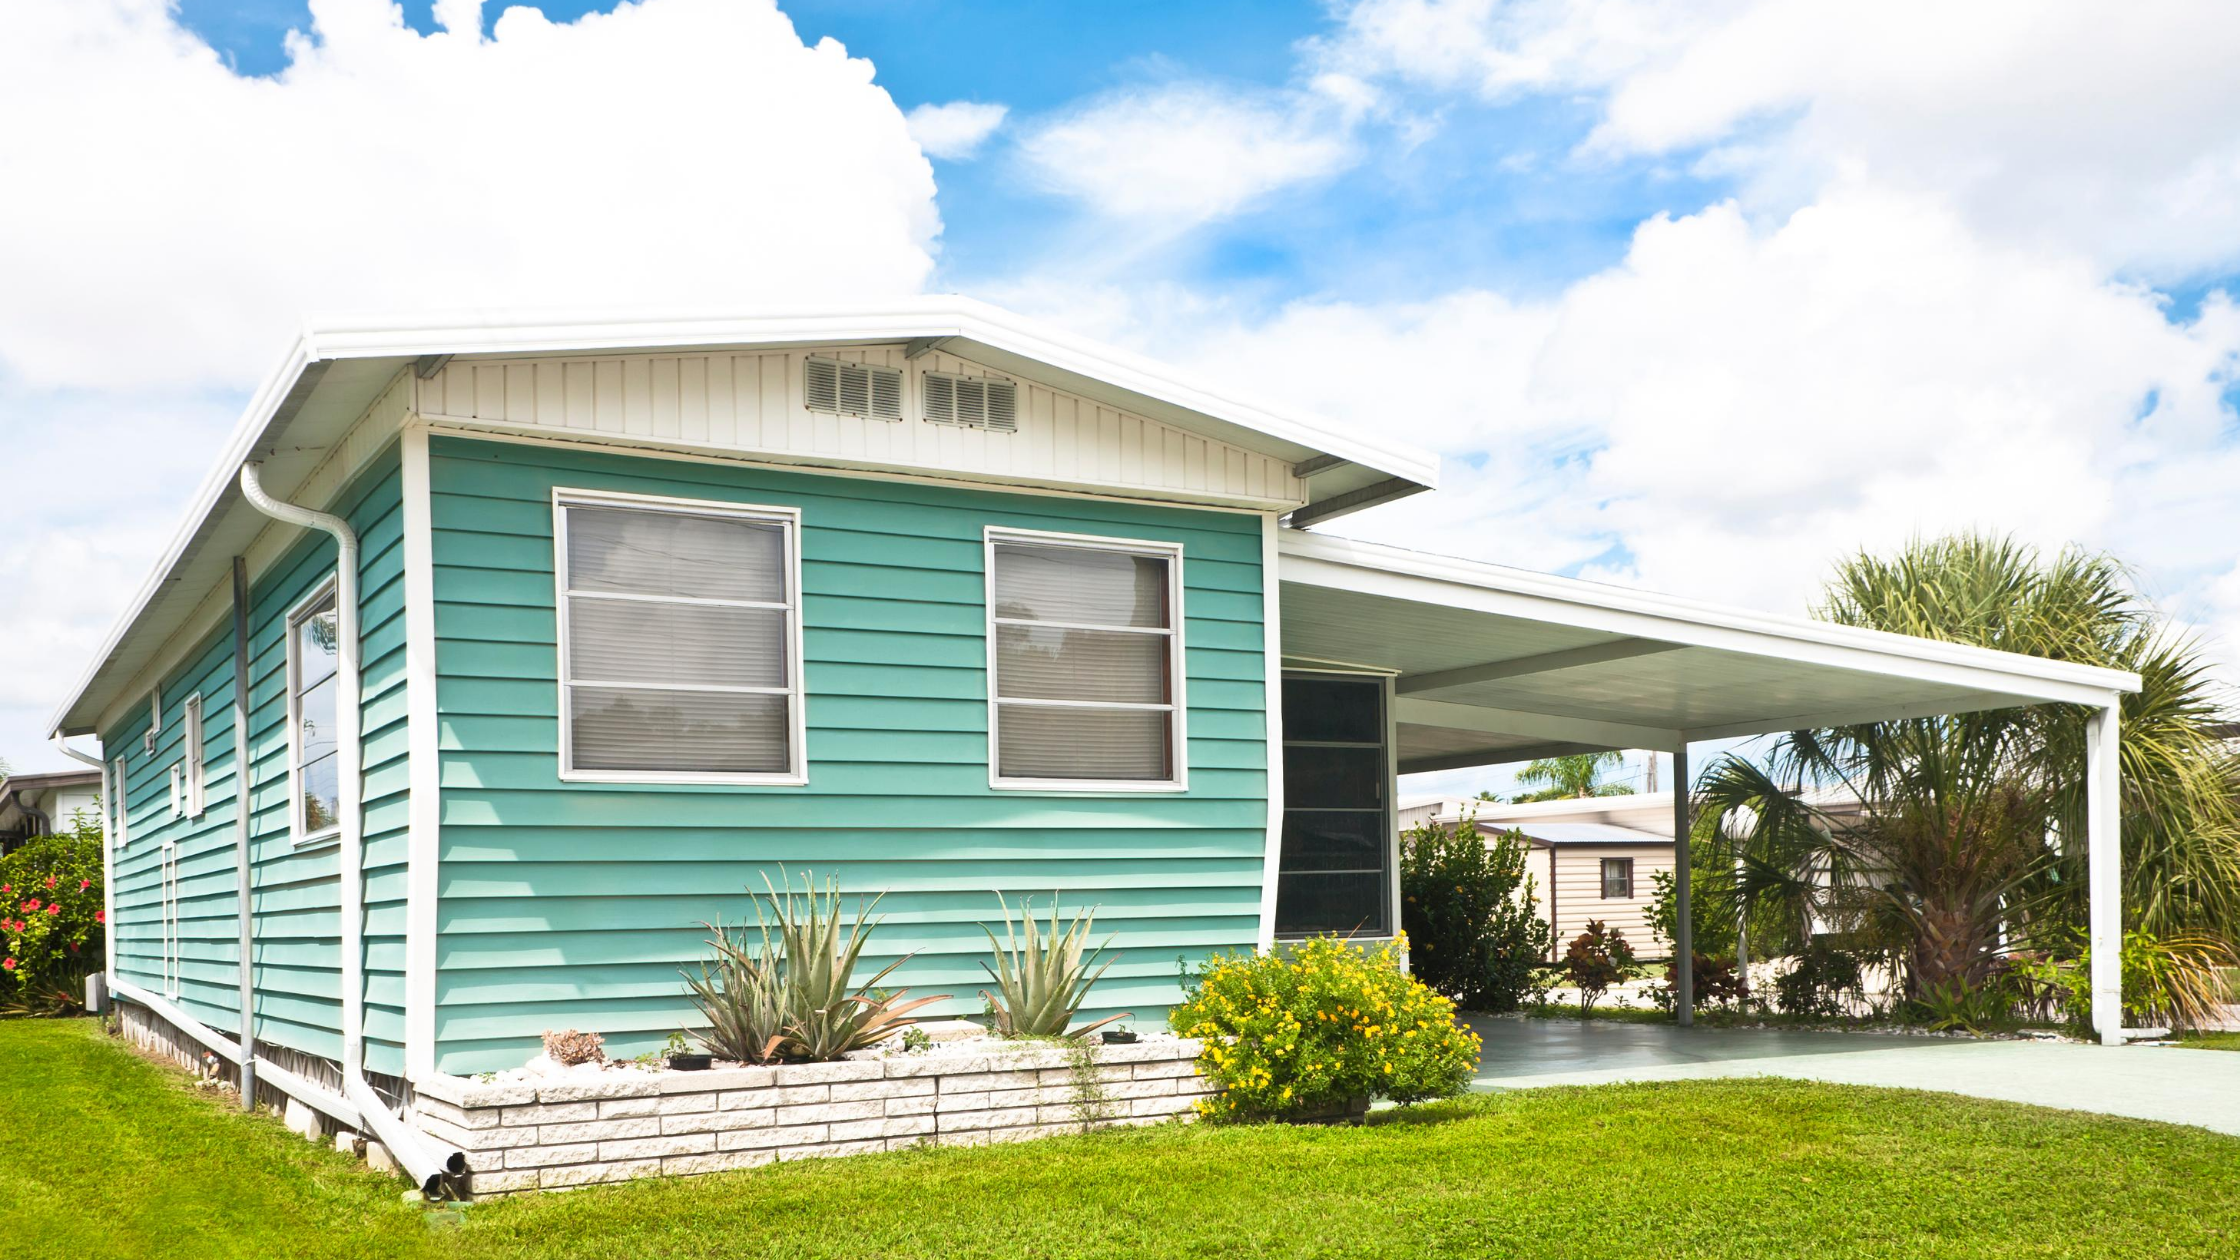 Reasons to Buy a Manufactured Home During the Current Health Crisis